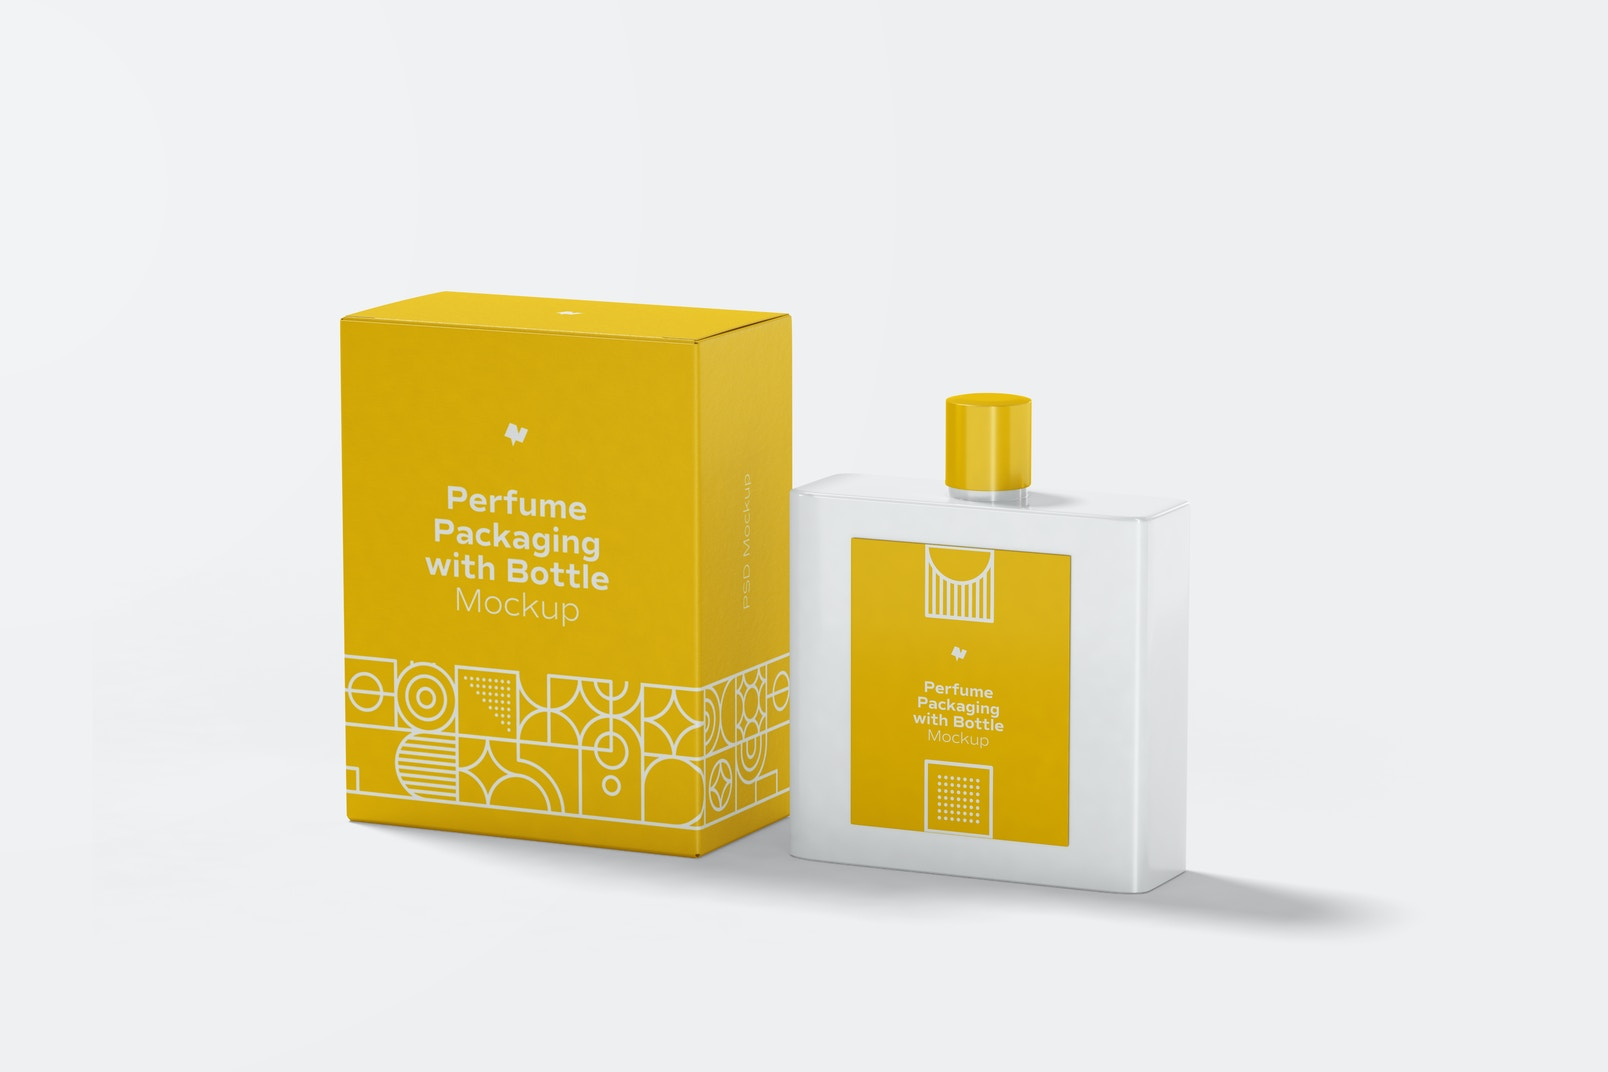 Perfume Packaging with Bottle Mockup, Perspective